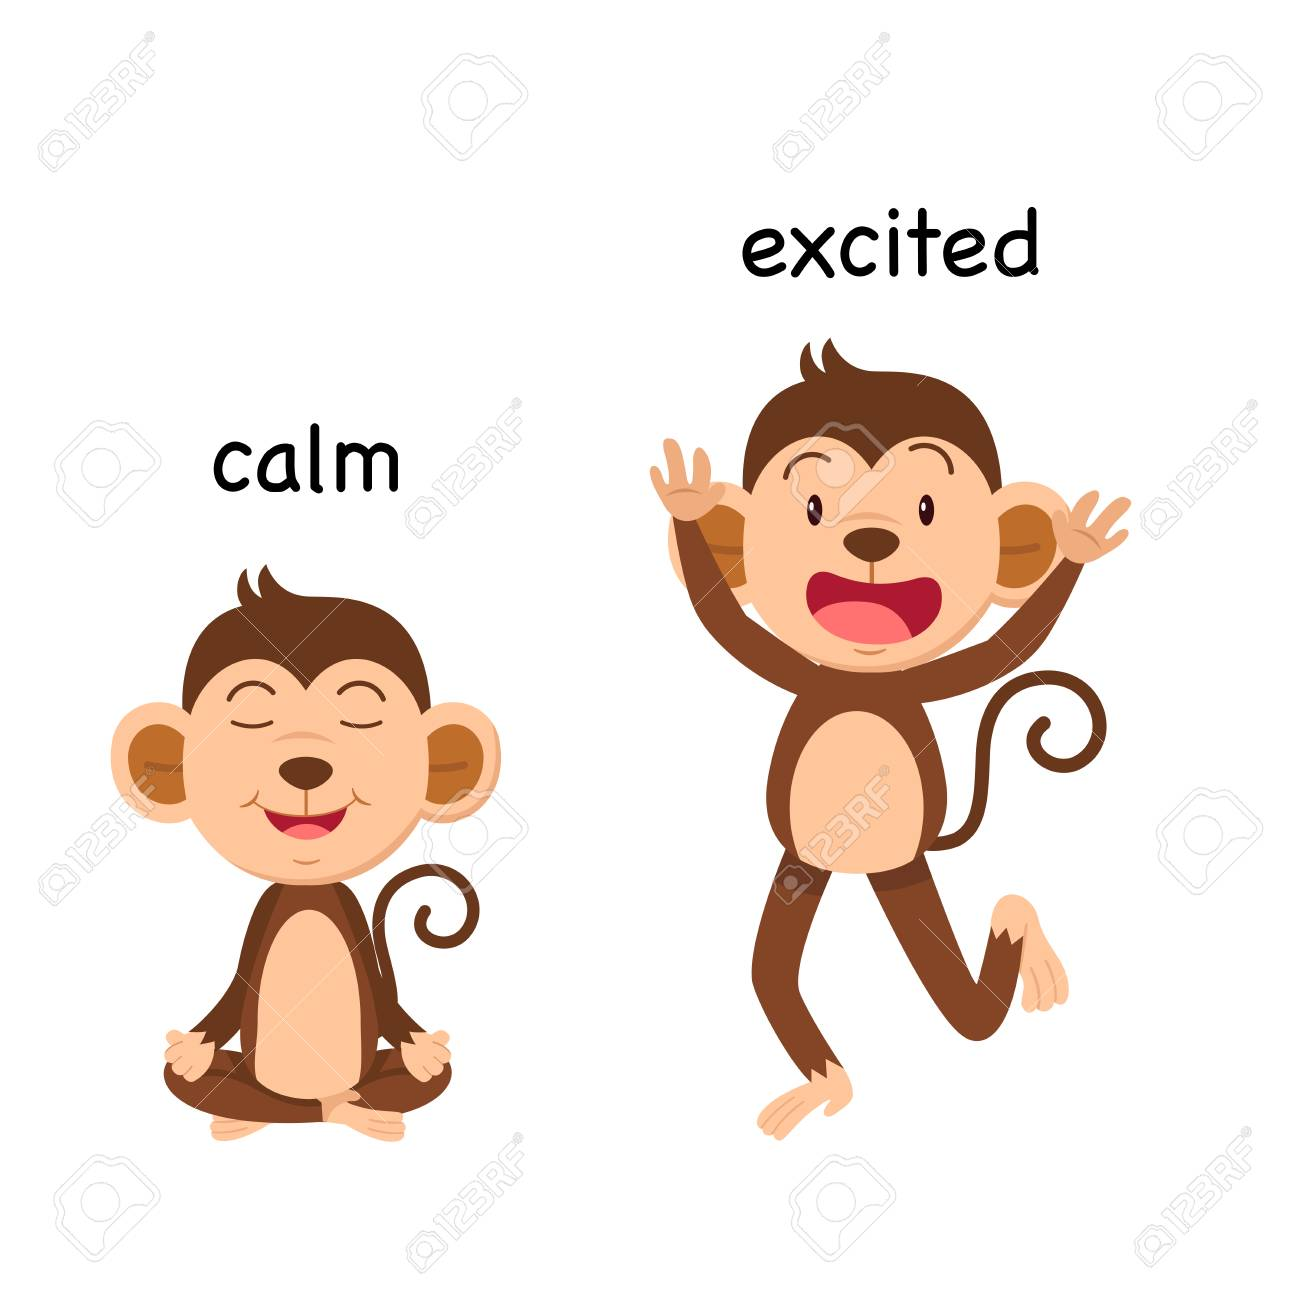 Opposite calm and excited enemy vector illustration - 114826790